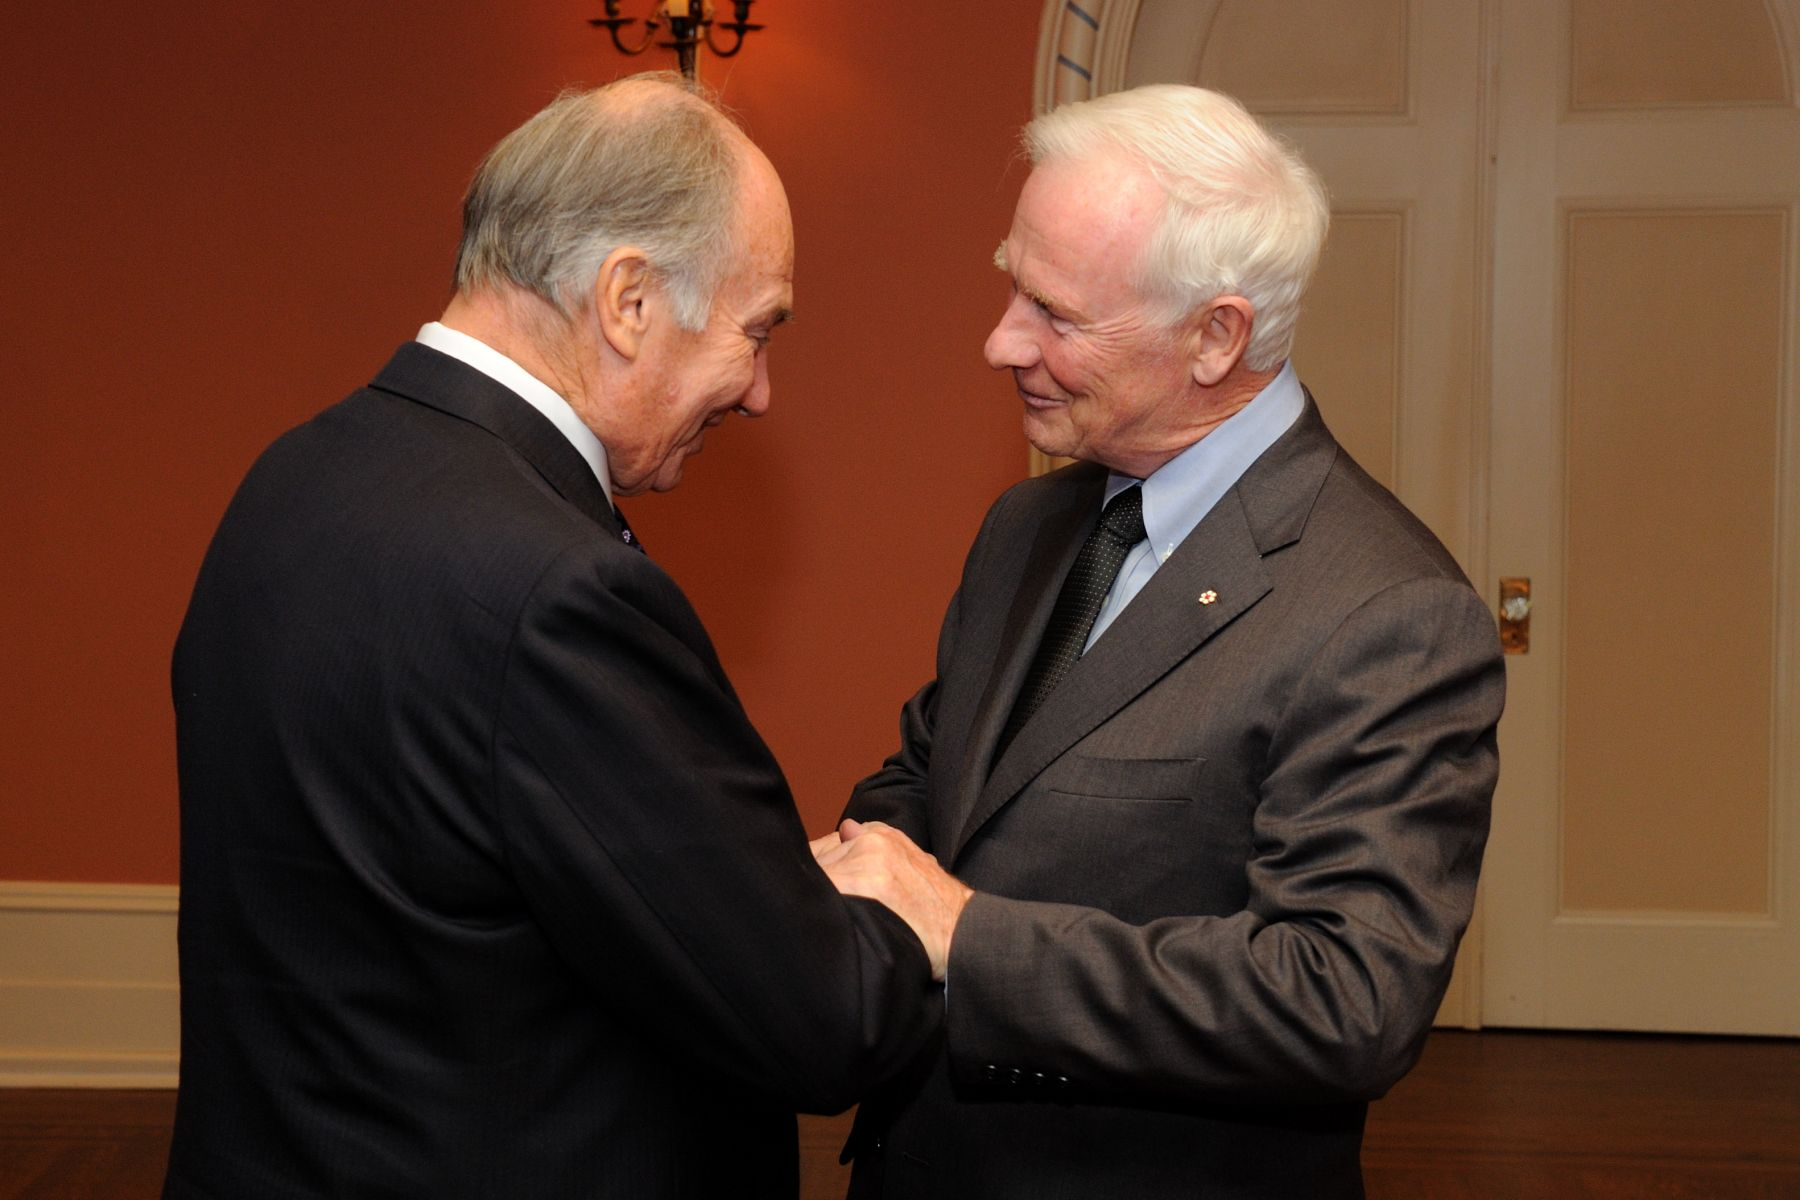 His Excellency the Right Honourable David Johnston welcomed His Highness the Aga Khan at Rideau Hall.